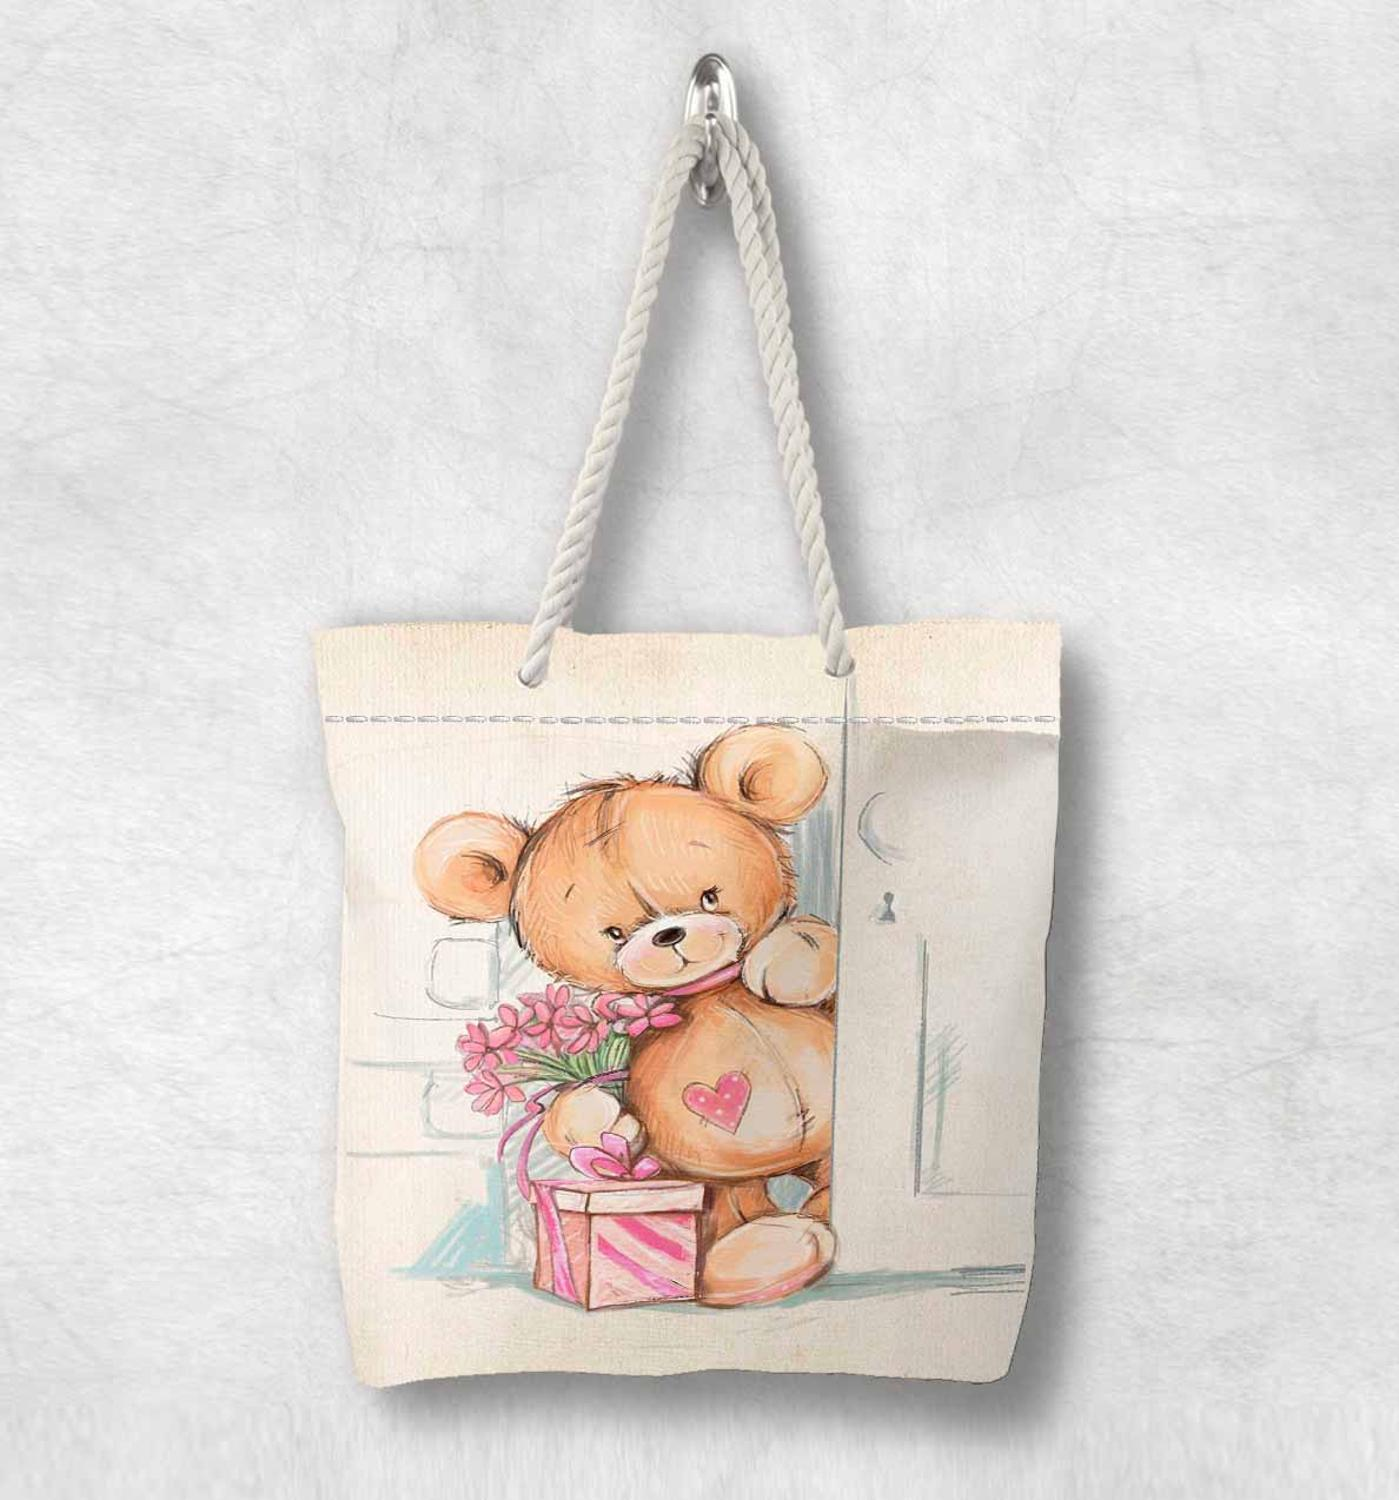 Else Pink Box Cute Funny Brown Bear Girl Animal White Rope Handle Canvas Bag  Cartoon Print Zippered Tote Bag Shoulder Bag